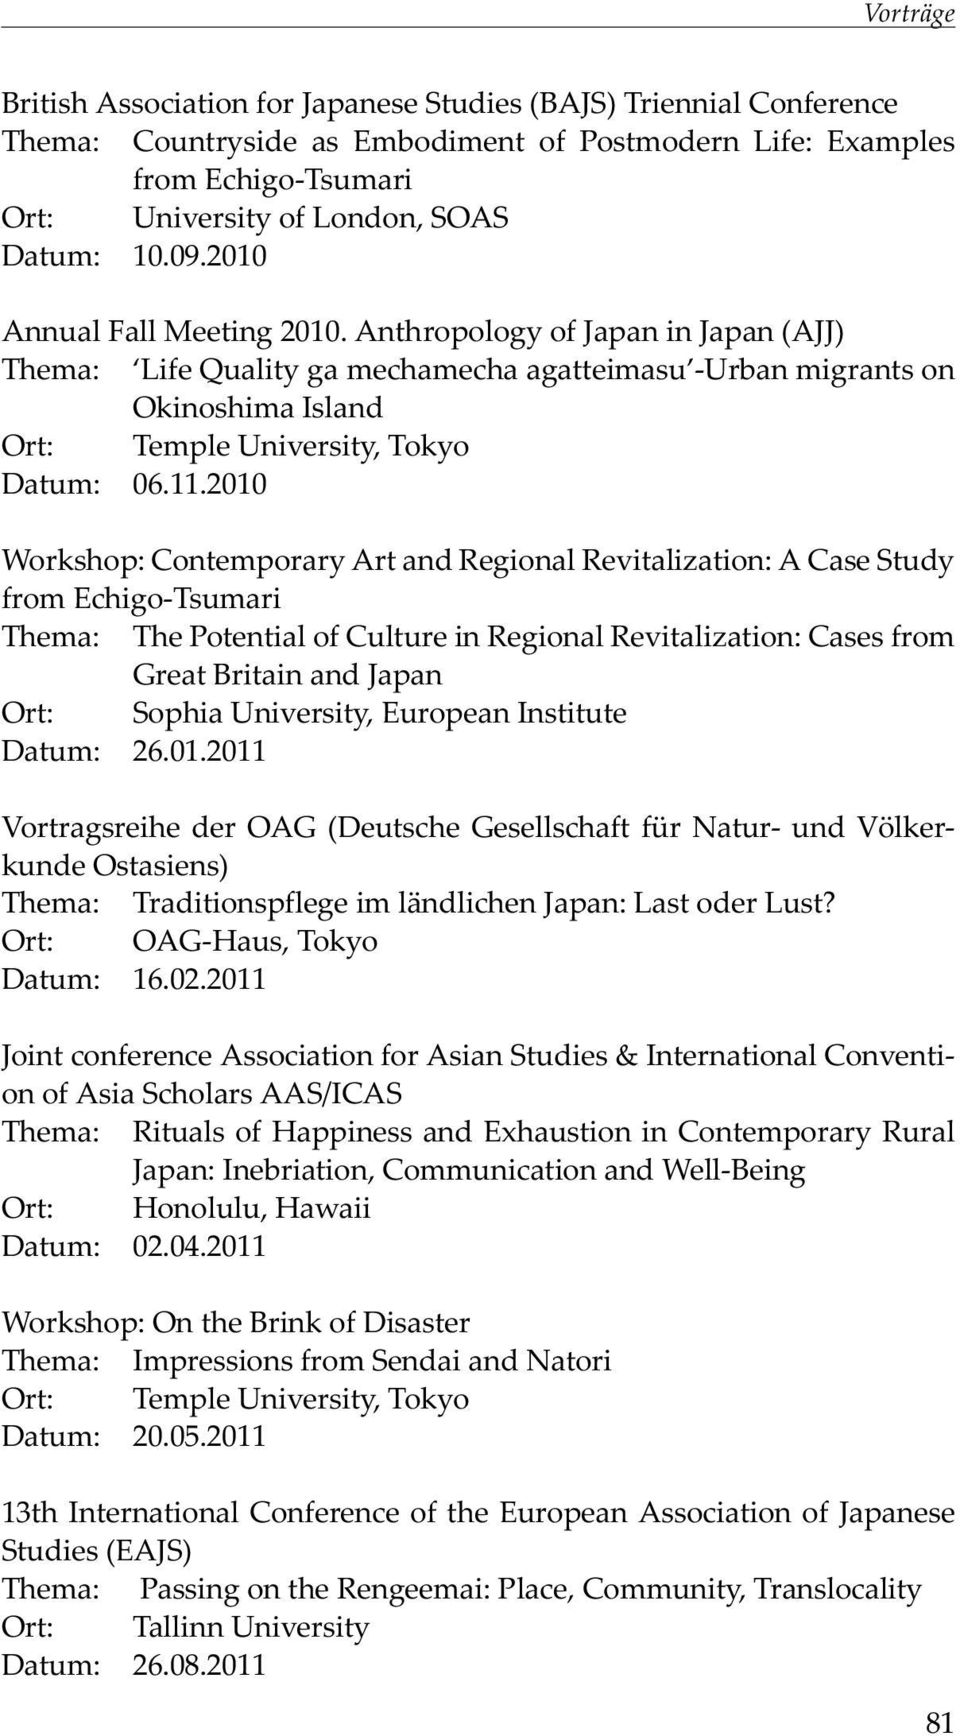 2010 Workshop: Contemporary Art and Regional Revitalization: A Case Study from Echigo-Tsumari Thema: The Potential of Culture in Regional Revitalization: Cases from Great Britain and Japan Ort: